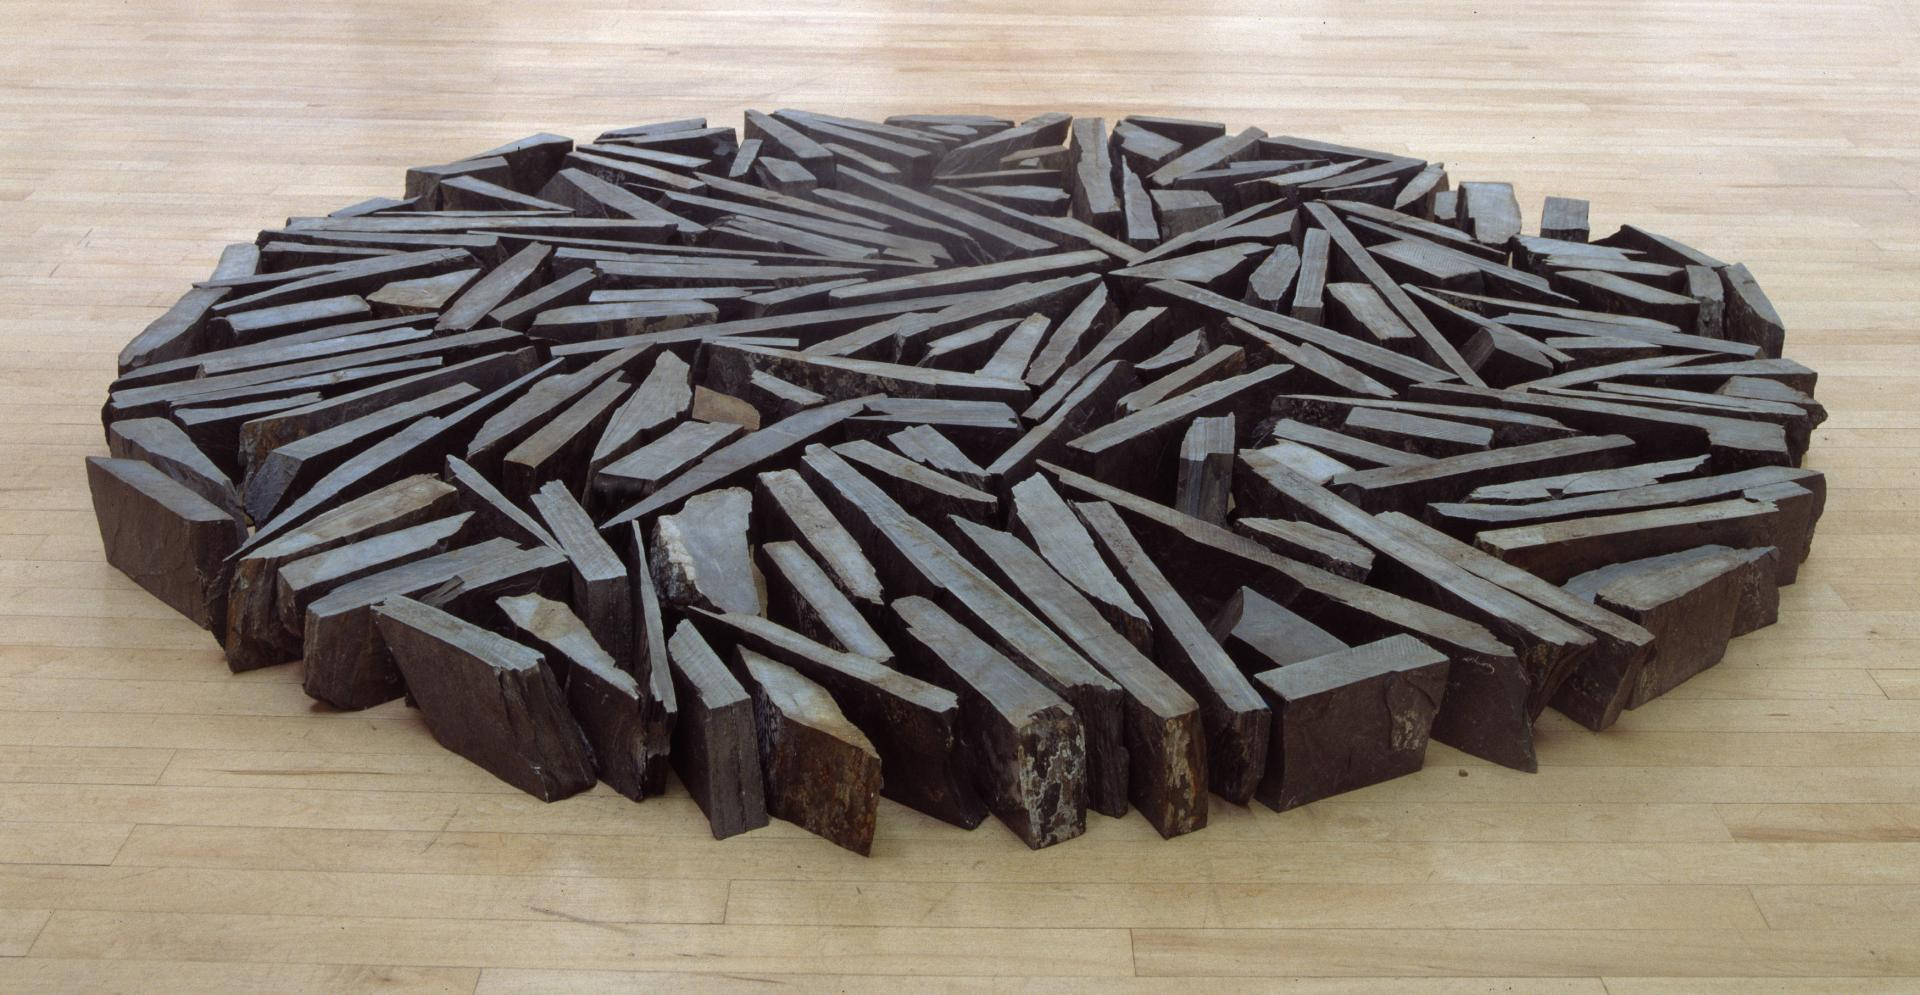 Richard Long, South Bank Circle 1991